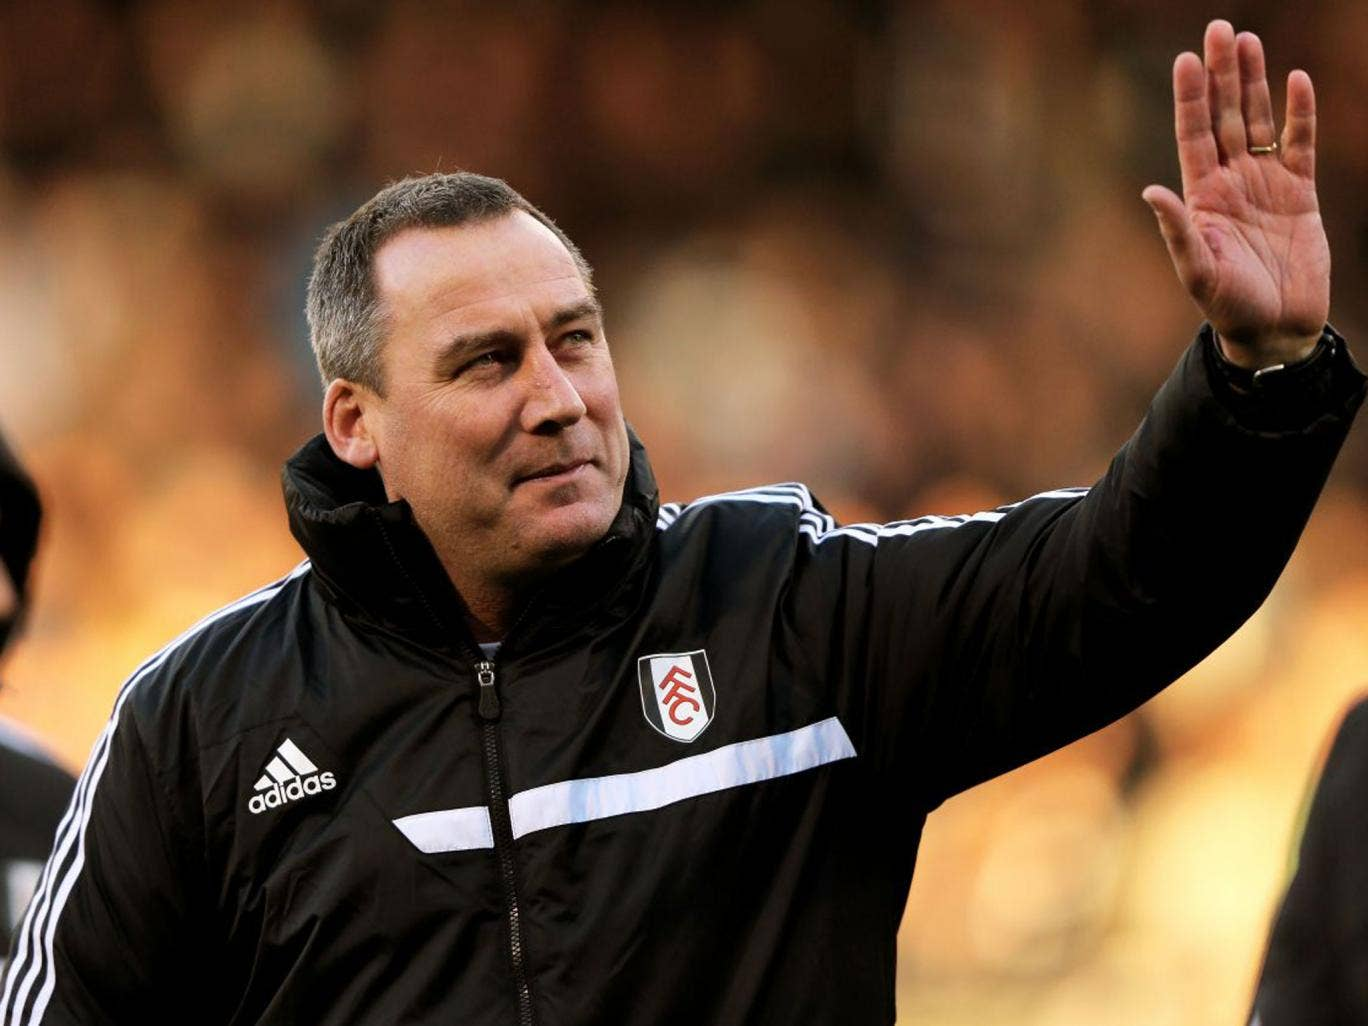 Rene Meulensteen will take charge of his first Fulham match against Tottenham